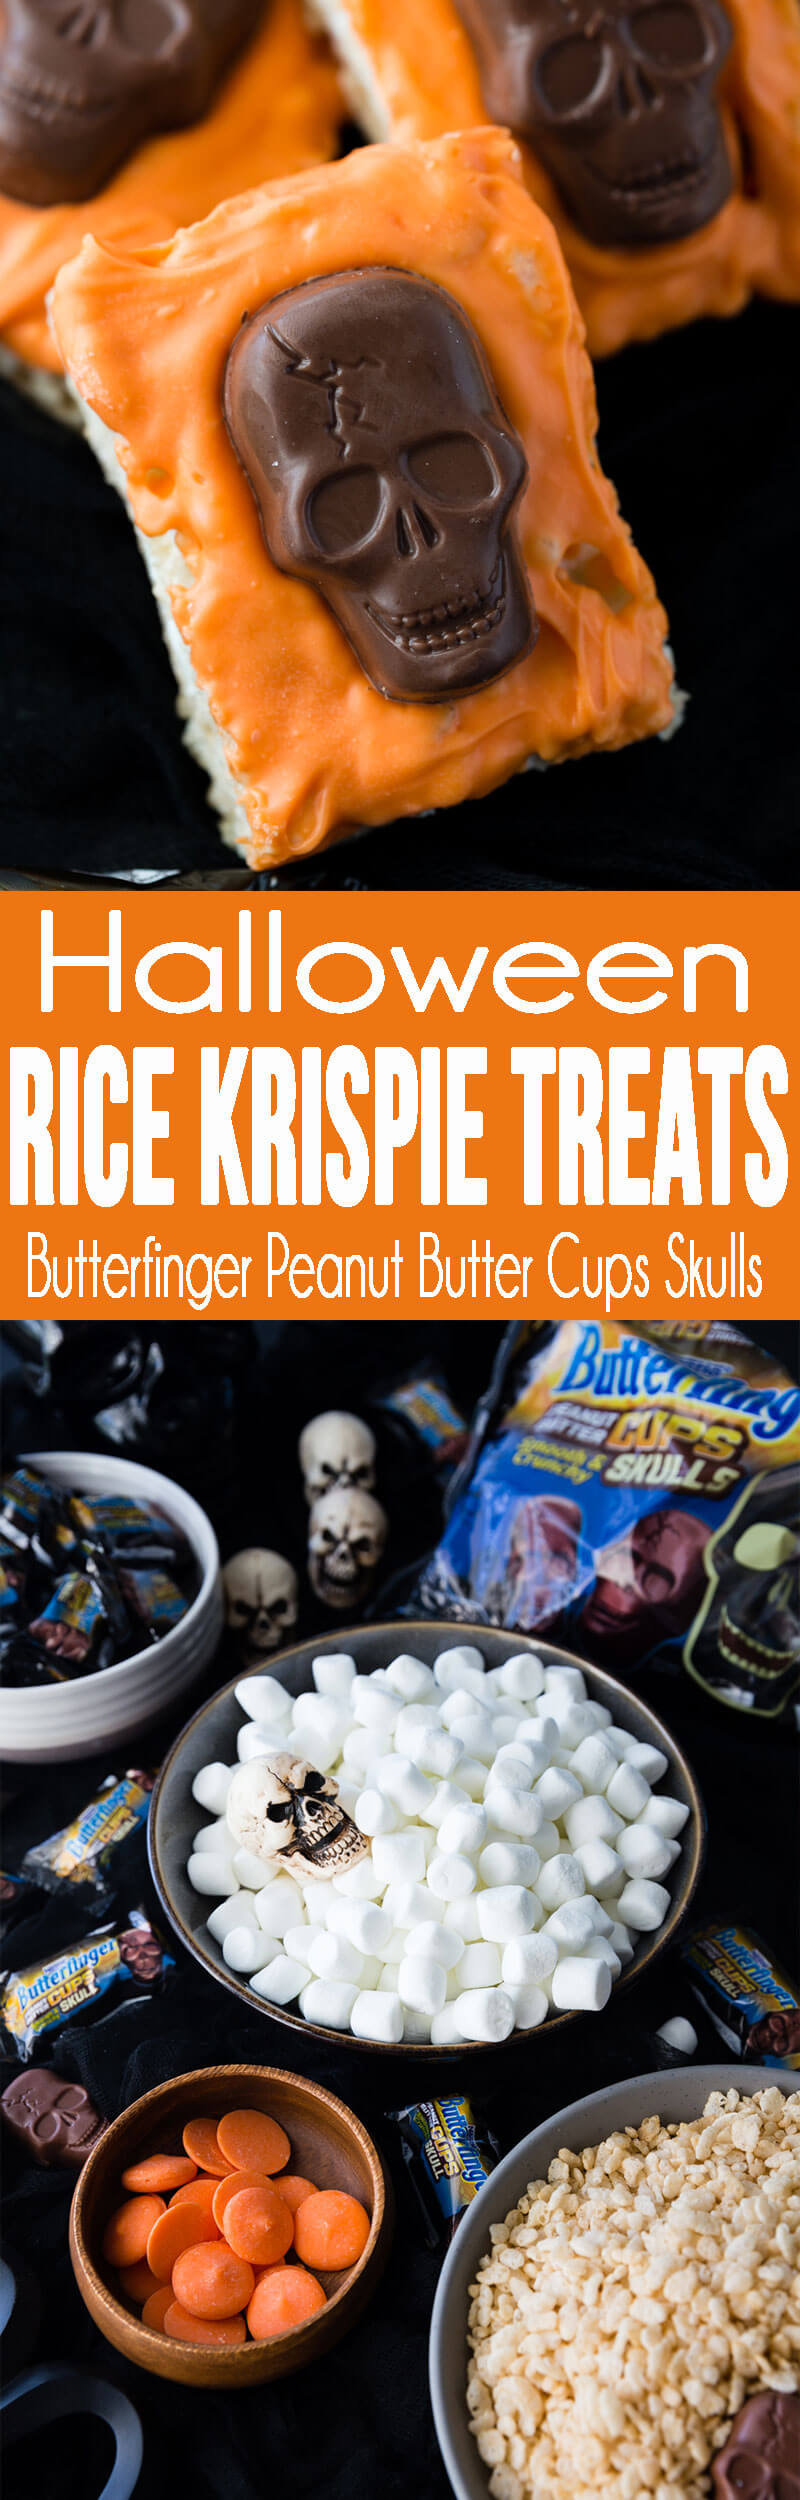 How to make Halloween Rice Krispie Treats with Butterfinger Peanut Butter Skulls